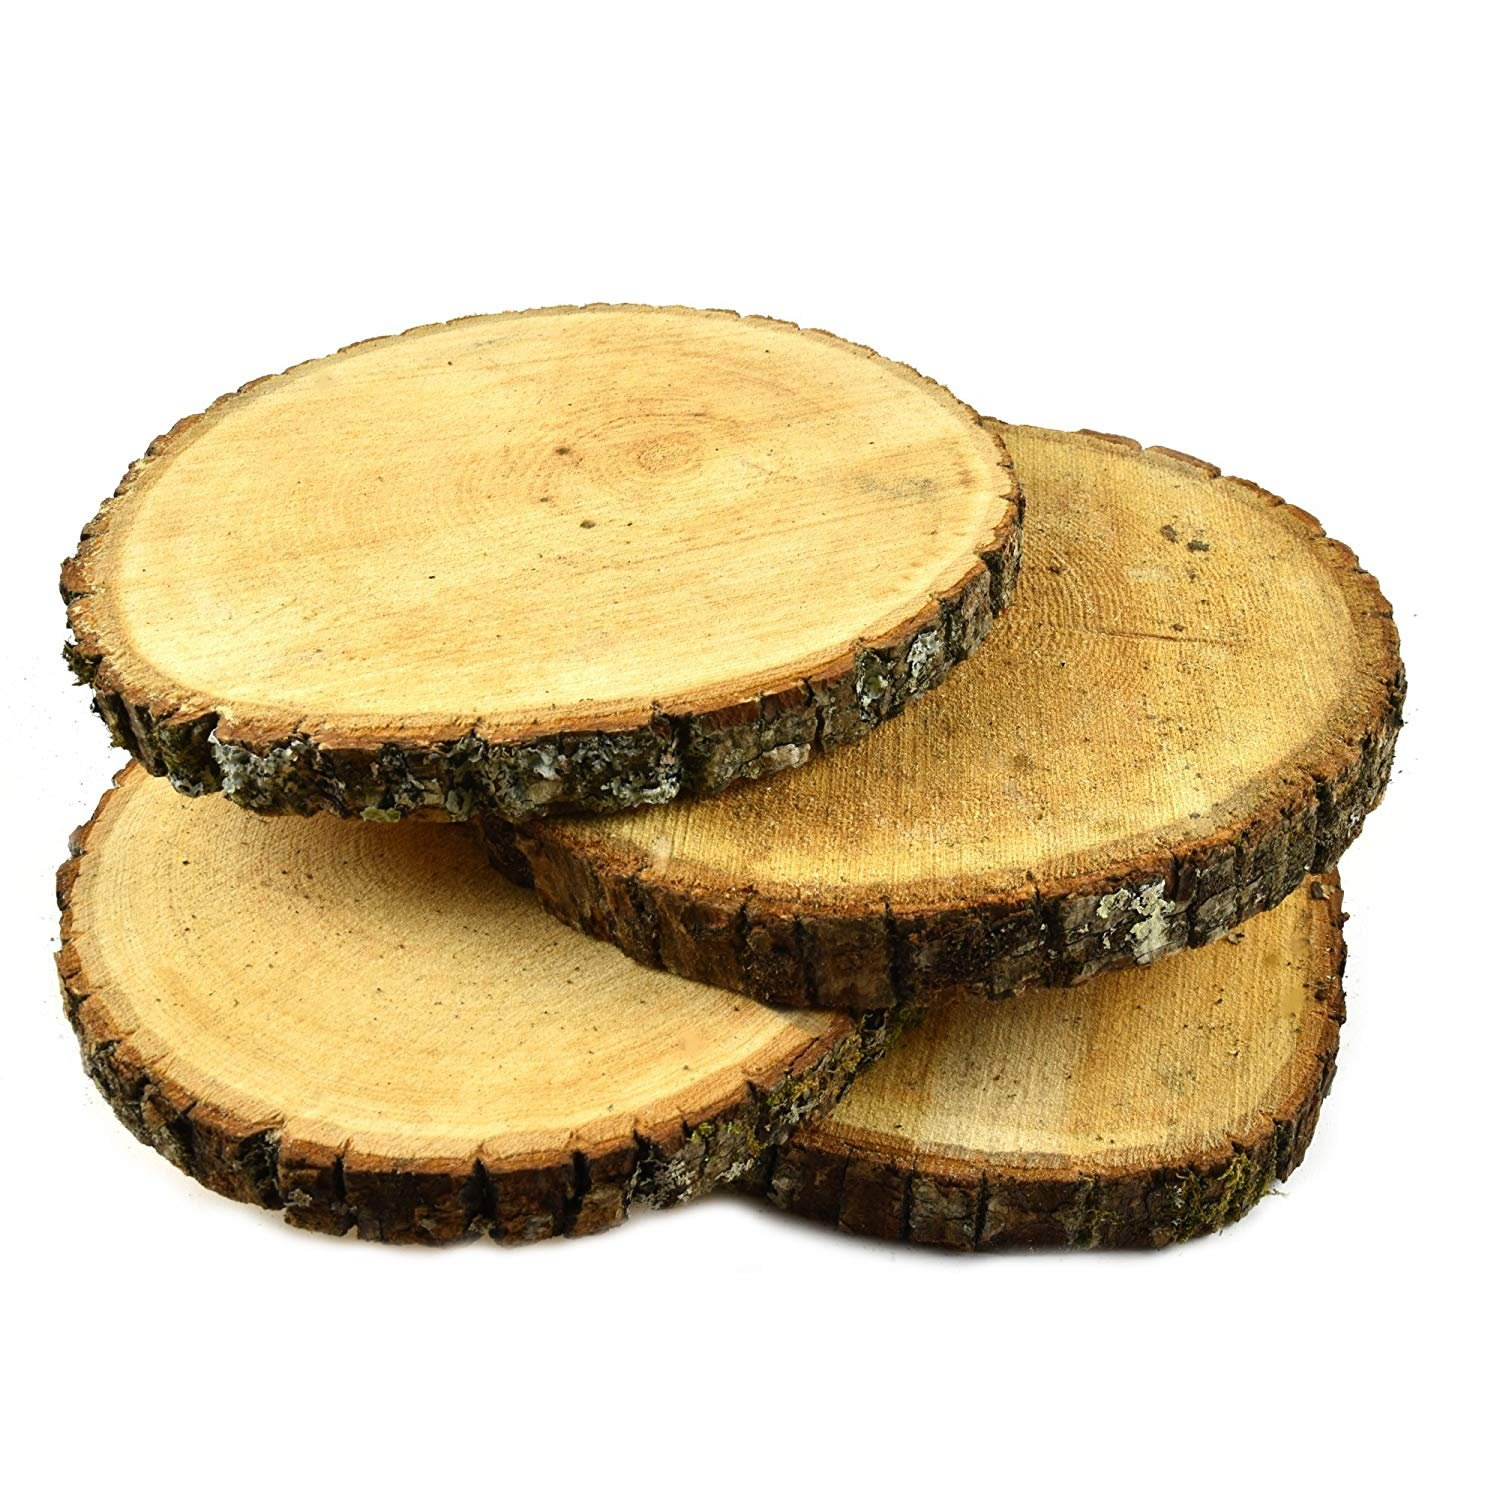 Woodlandia Basswood Disk 8x1 Inches - 4 Pack by Woodlandia (Image #1)